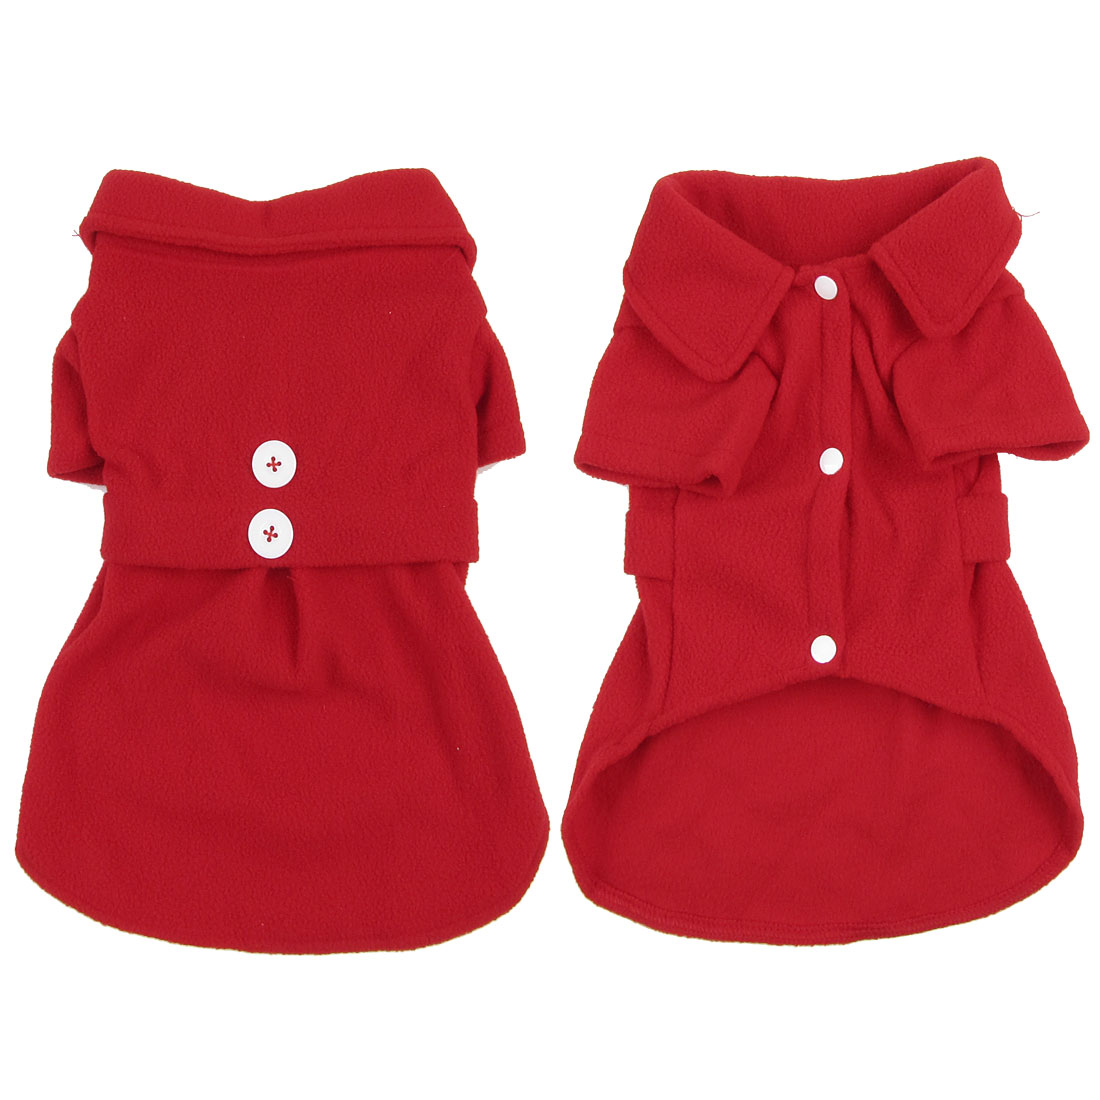 Unique Bargains Short Sleeves Single Breasted Doggy Poodle Coat Winter Clothes Red M